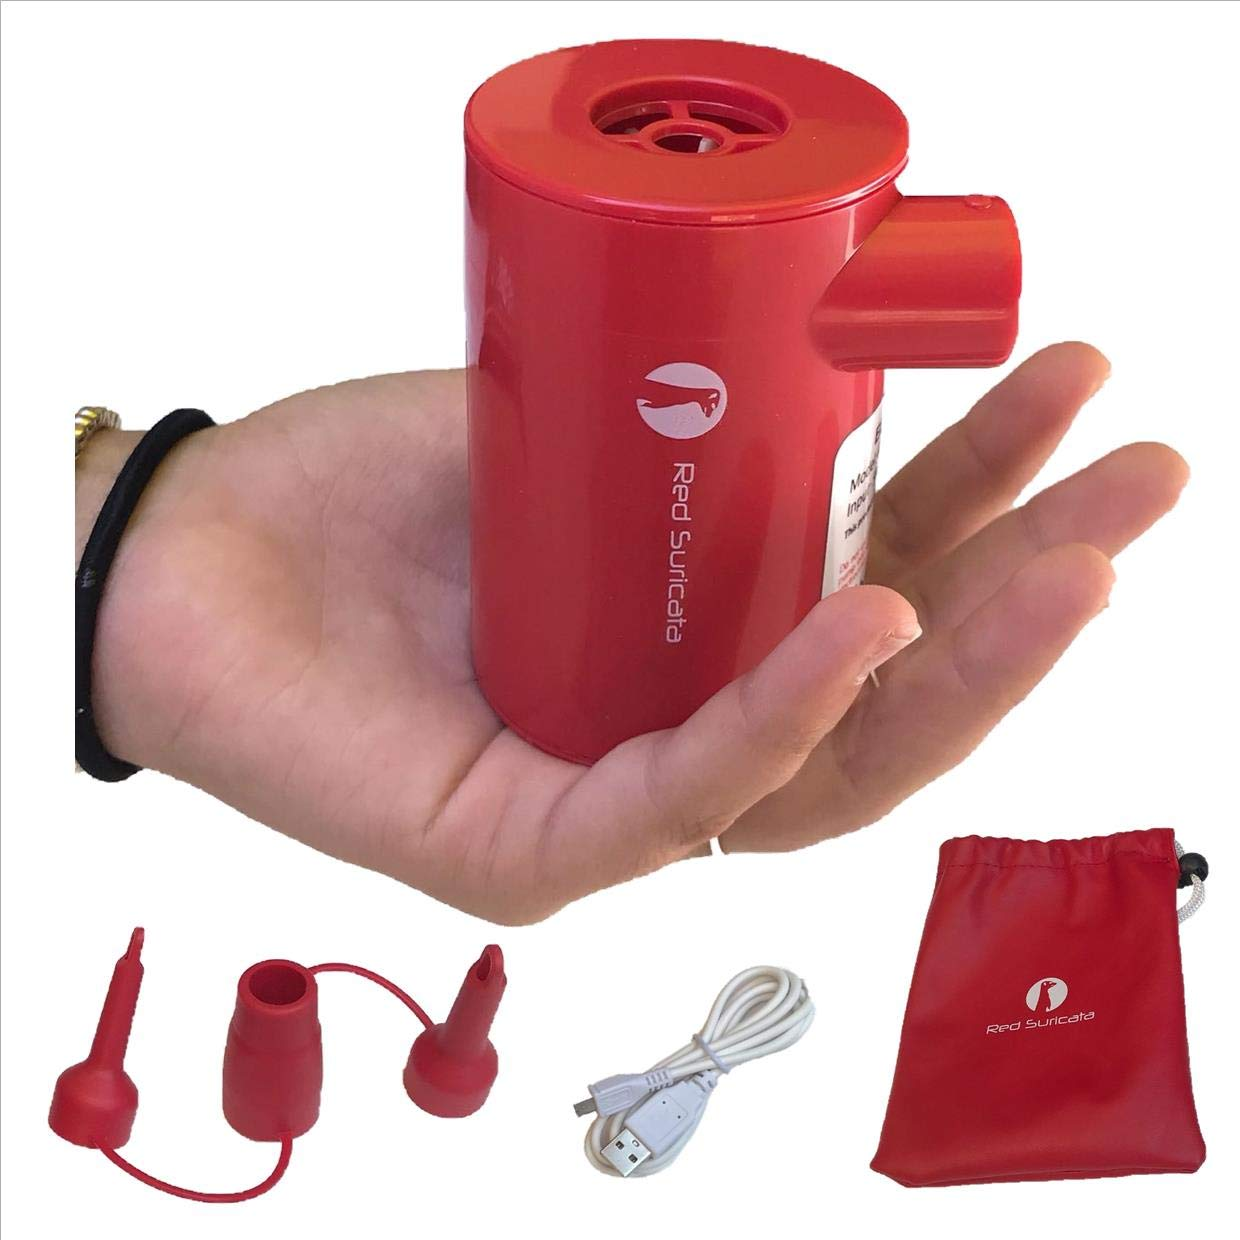 Red Suricata Rechargeable Air pump – Lightweight, USB, portable, cordless, electric battery powered & operated mini air pump for inflatables, mattresses, lounger sofa, pool floats, vacuum bags, airbed